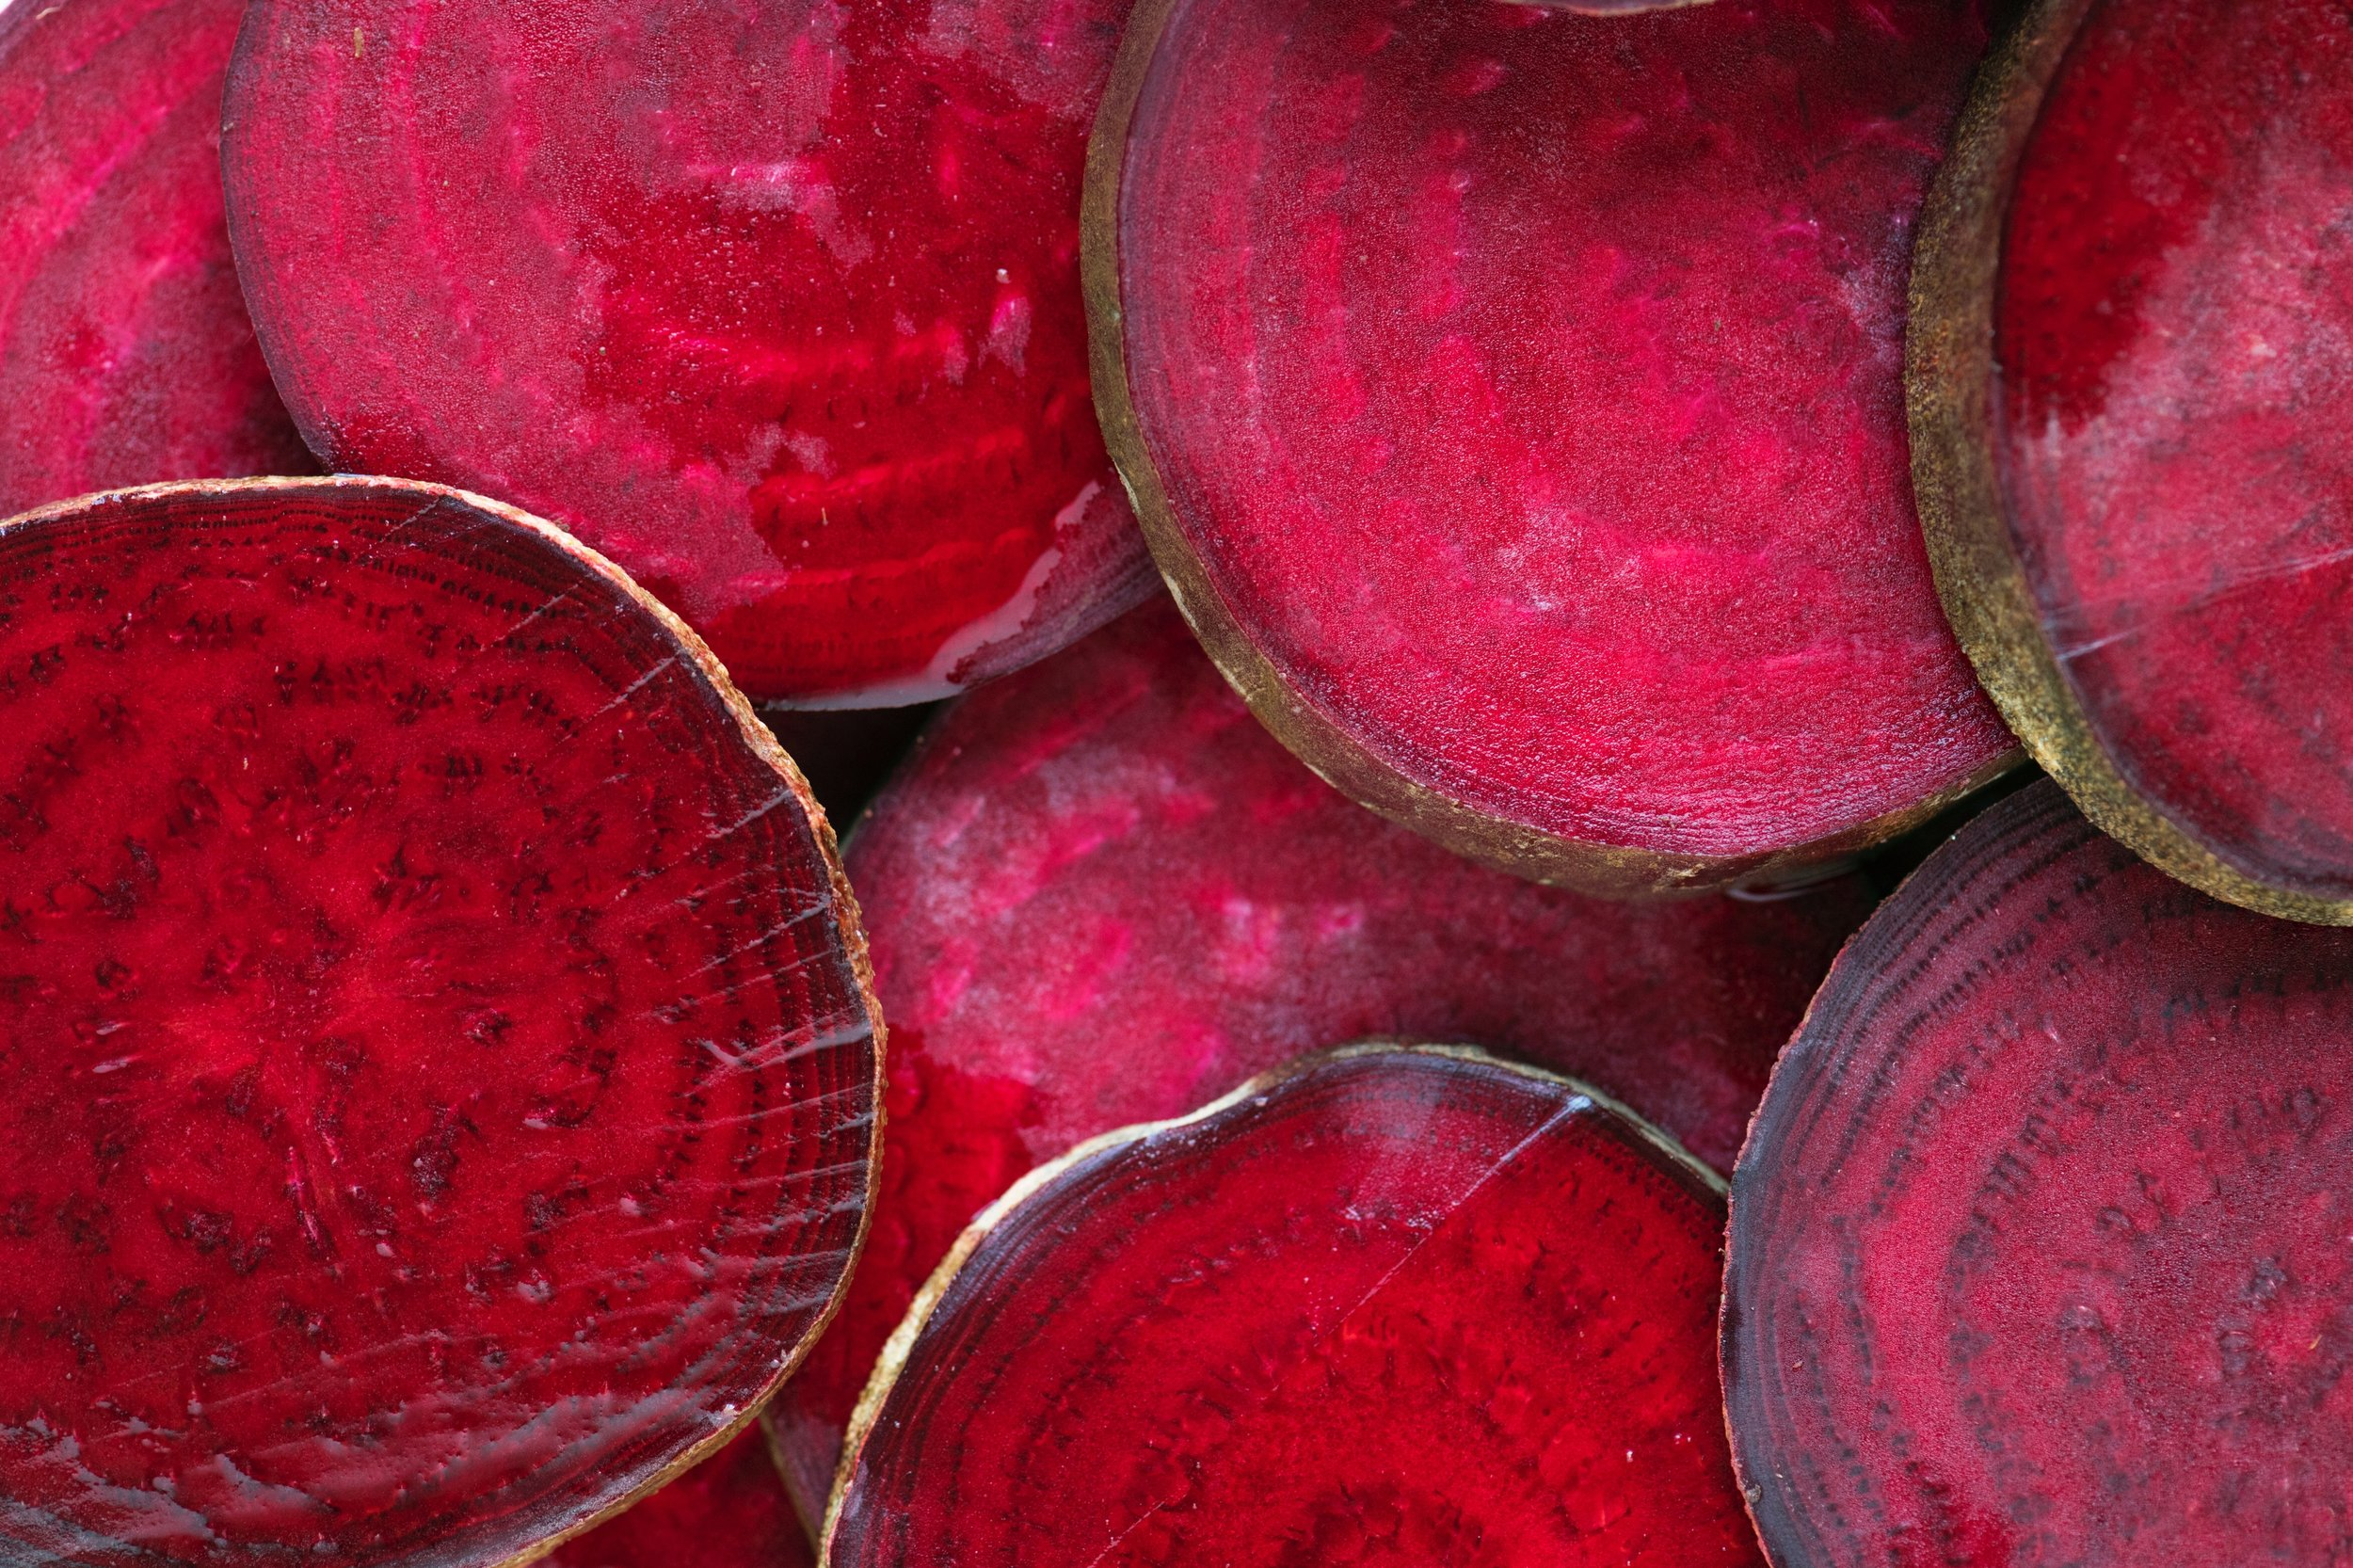 The liver loves beets.